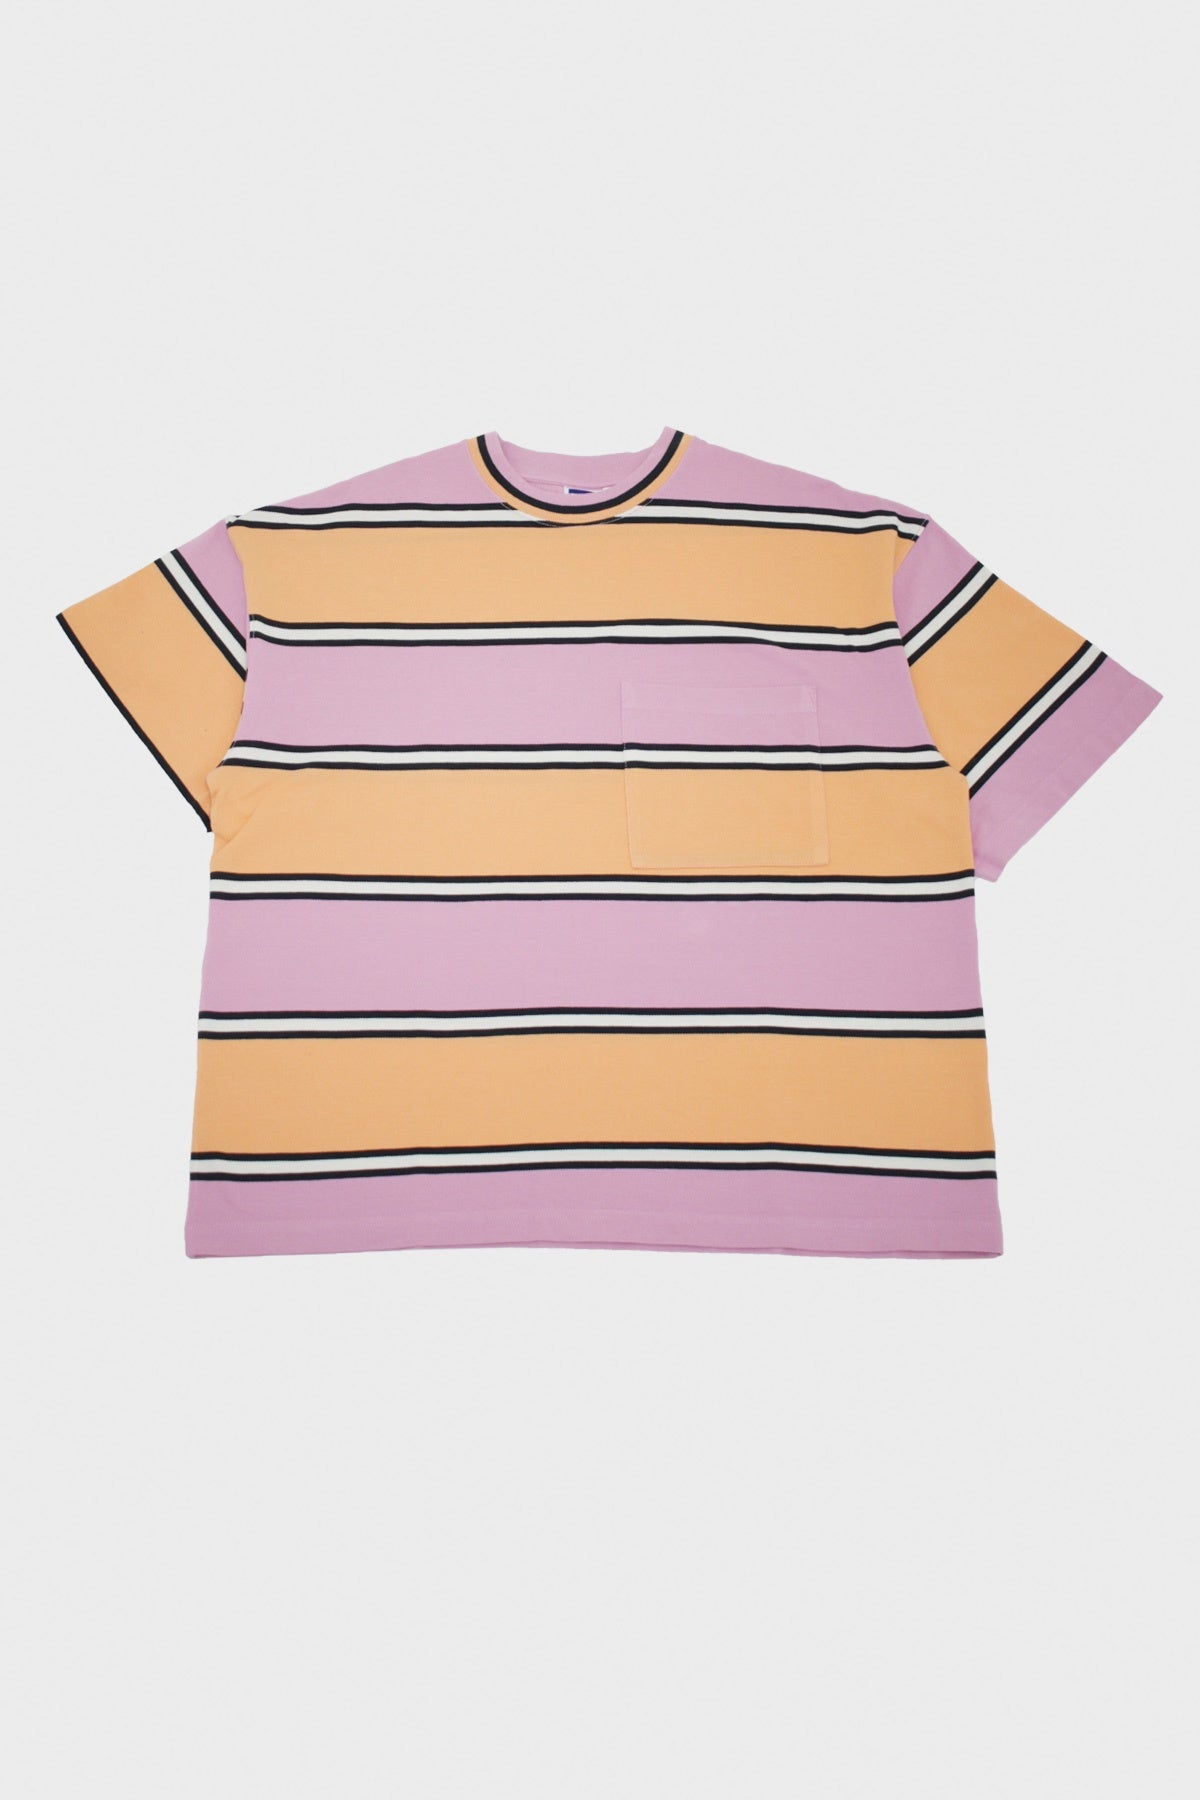 Levi's Vintage Clothing - 80s Wide Tee Allsorts - Orange Pink - Canoe Club